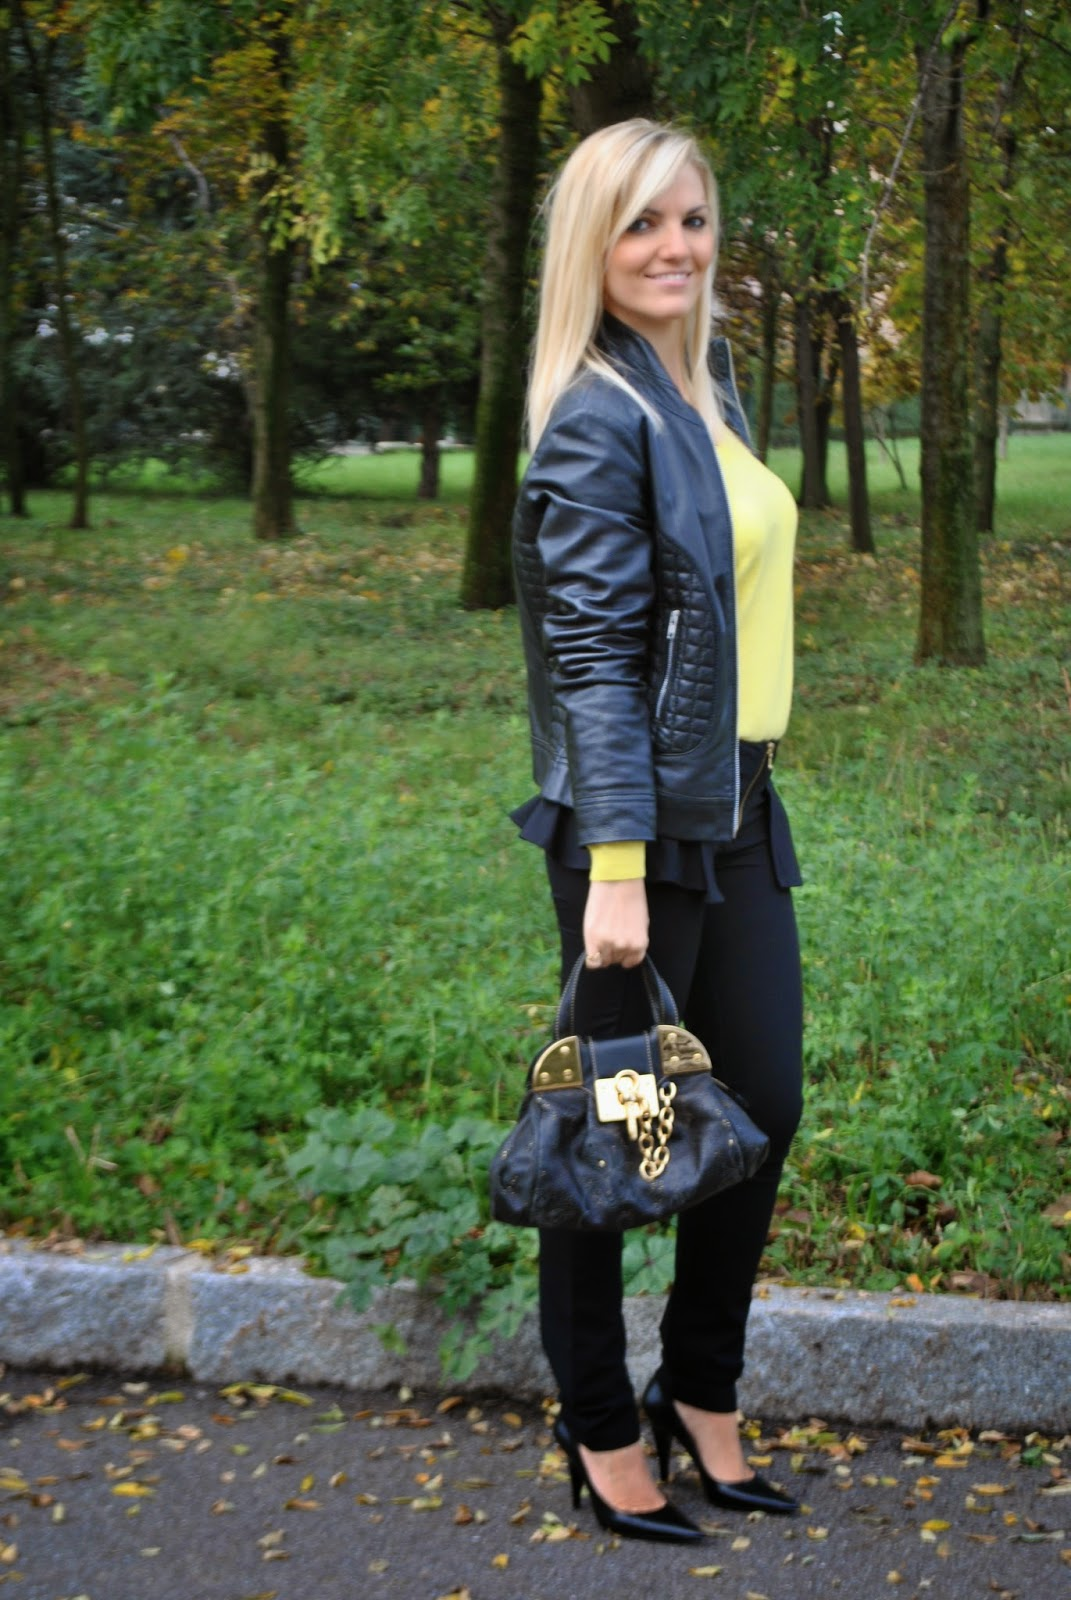 outfit chiodo in pelle maglione con scollo a v giallo giacca di pelle maglione benetton abbinamento giallo e nero how to wear yellow and black outfit autunnali autumnal outfits borsa braccialini braccialini bag majique london jewels bracciale con monete majique london  autumnal outfits  outfit autunnali outfit mariafelicia magno mariafelicia magno fashion blogger italian girls ragazze italiane fahsion blogger bionde ragazze bionde blonde girls fashion bloggers italy